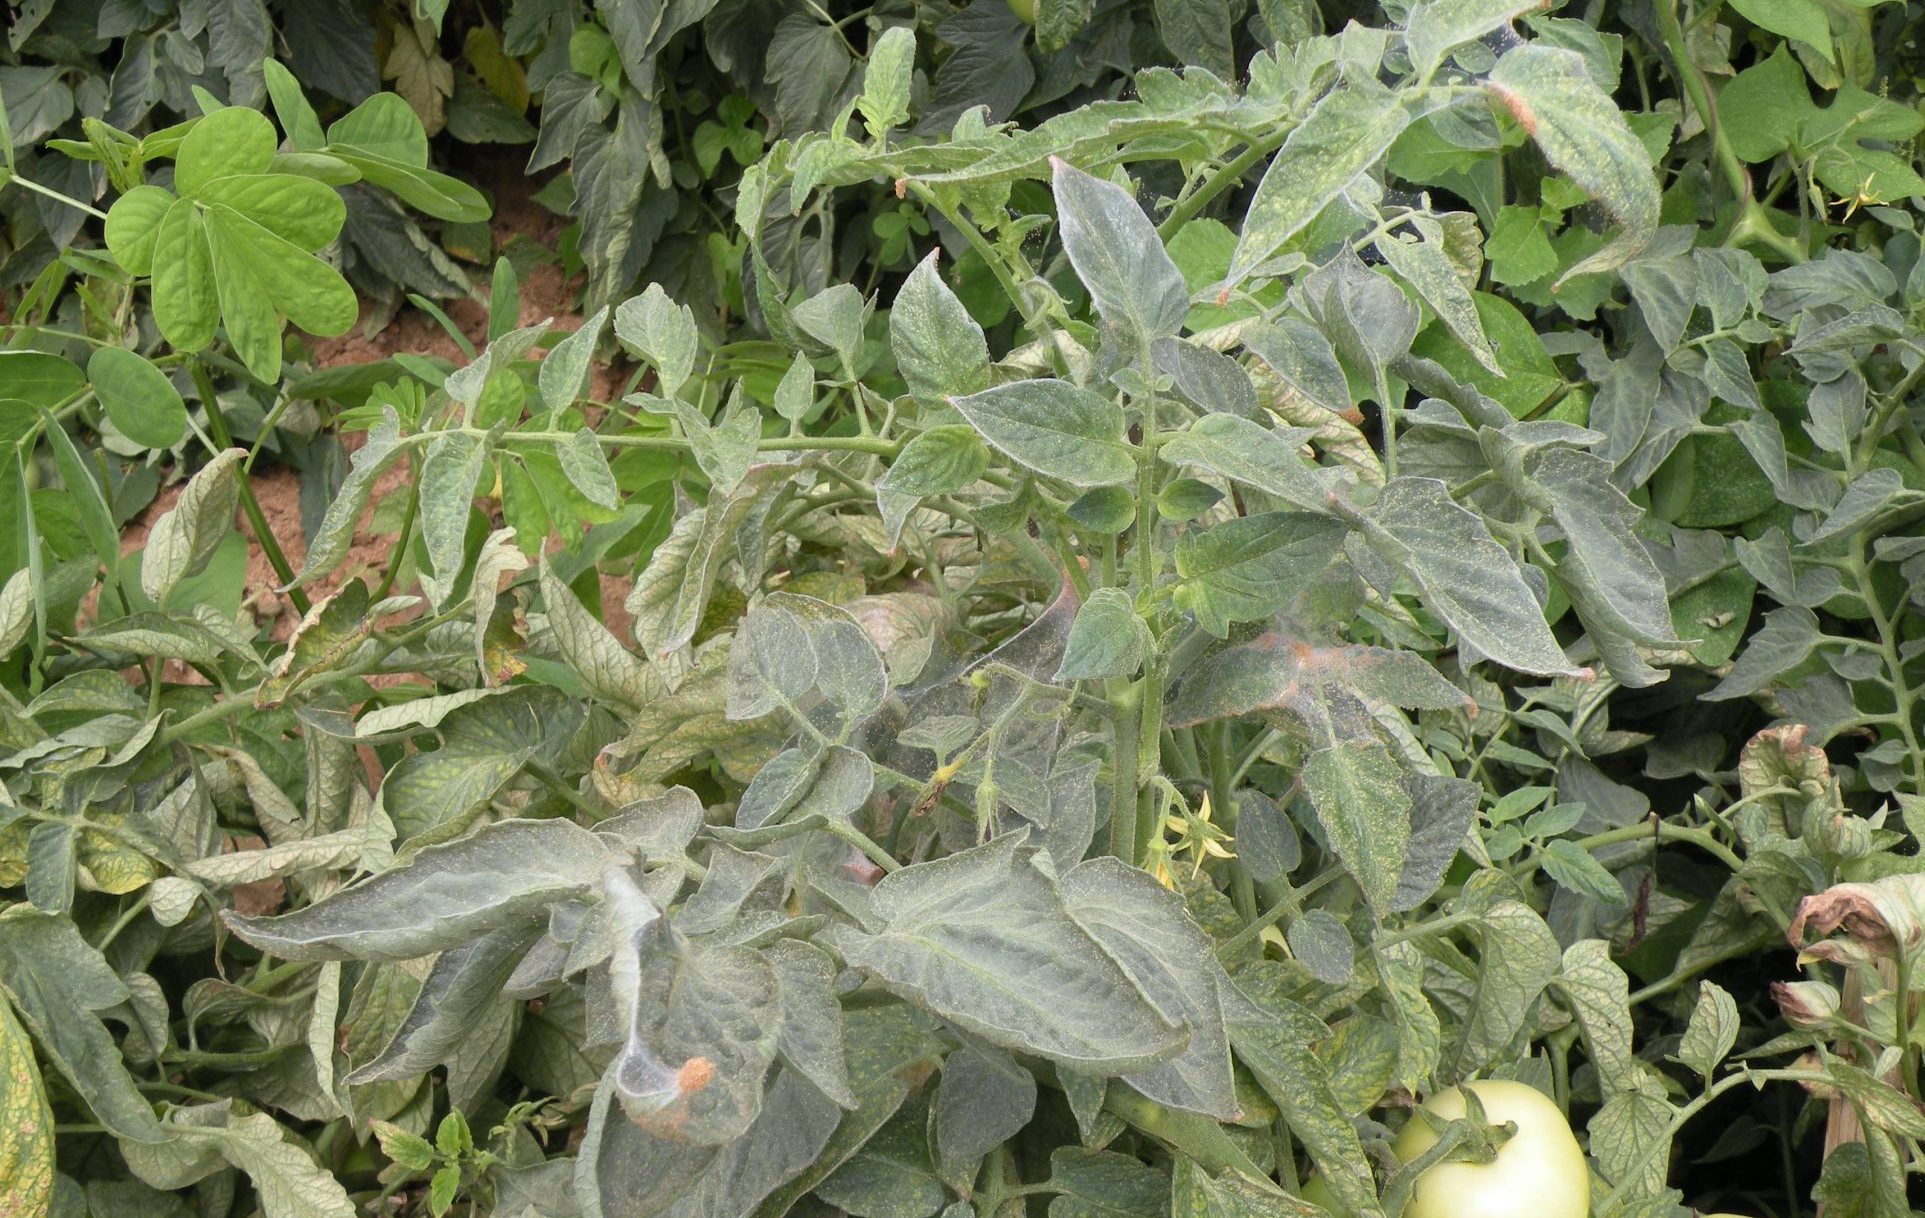 Spider mites on tomatoes